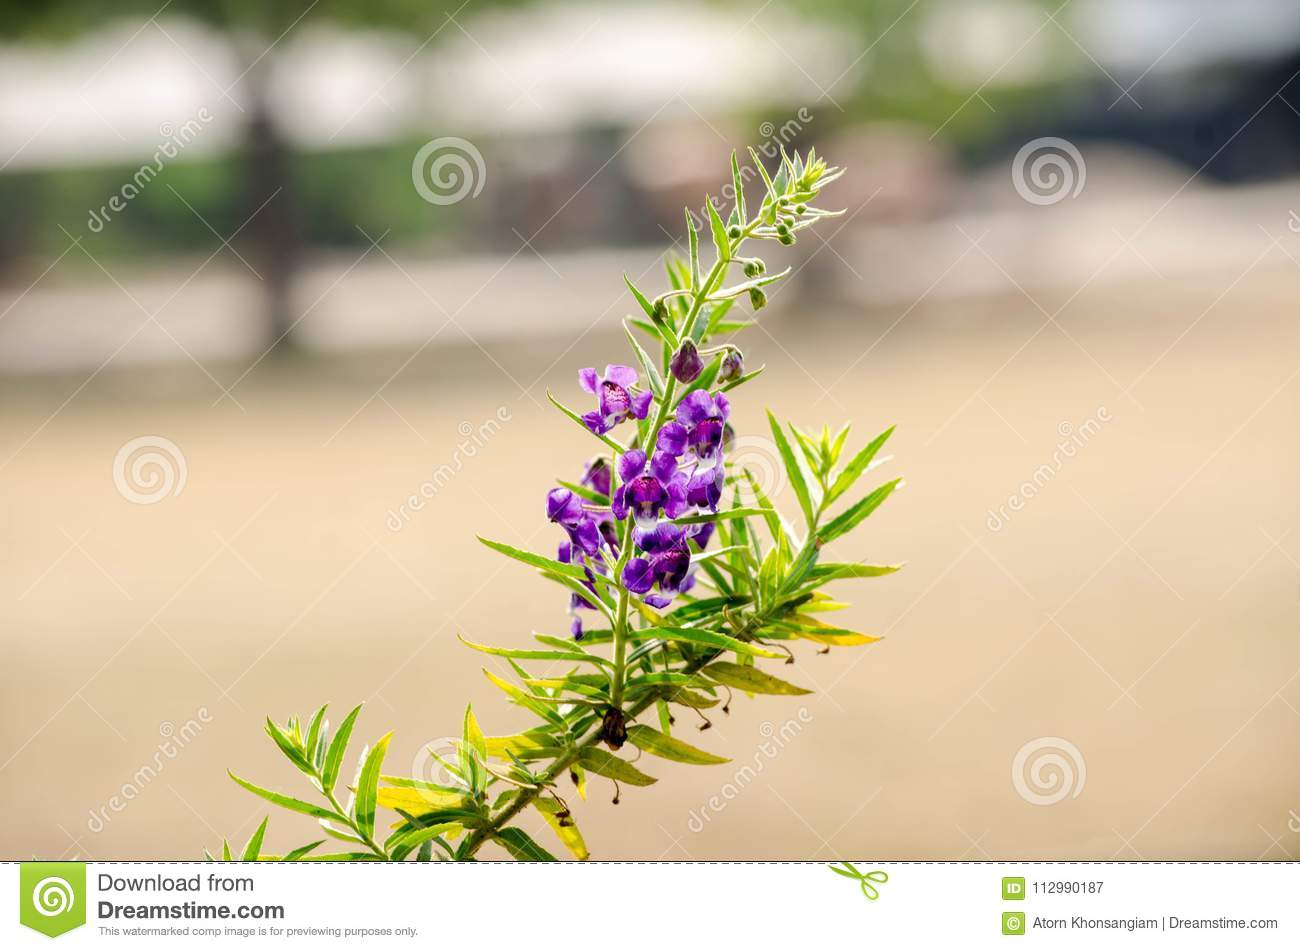 Purple flowers or forget me flowers. Sakonnakhon,Forget me not Thailand